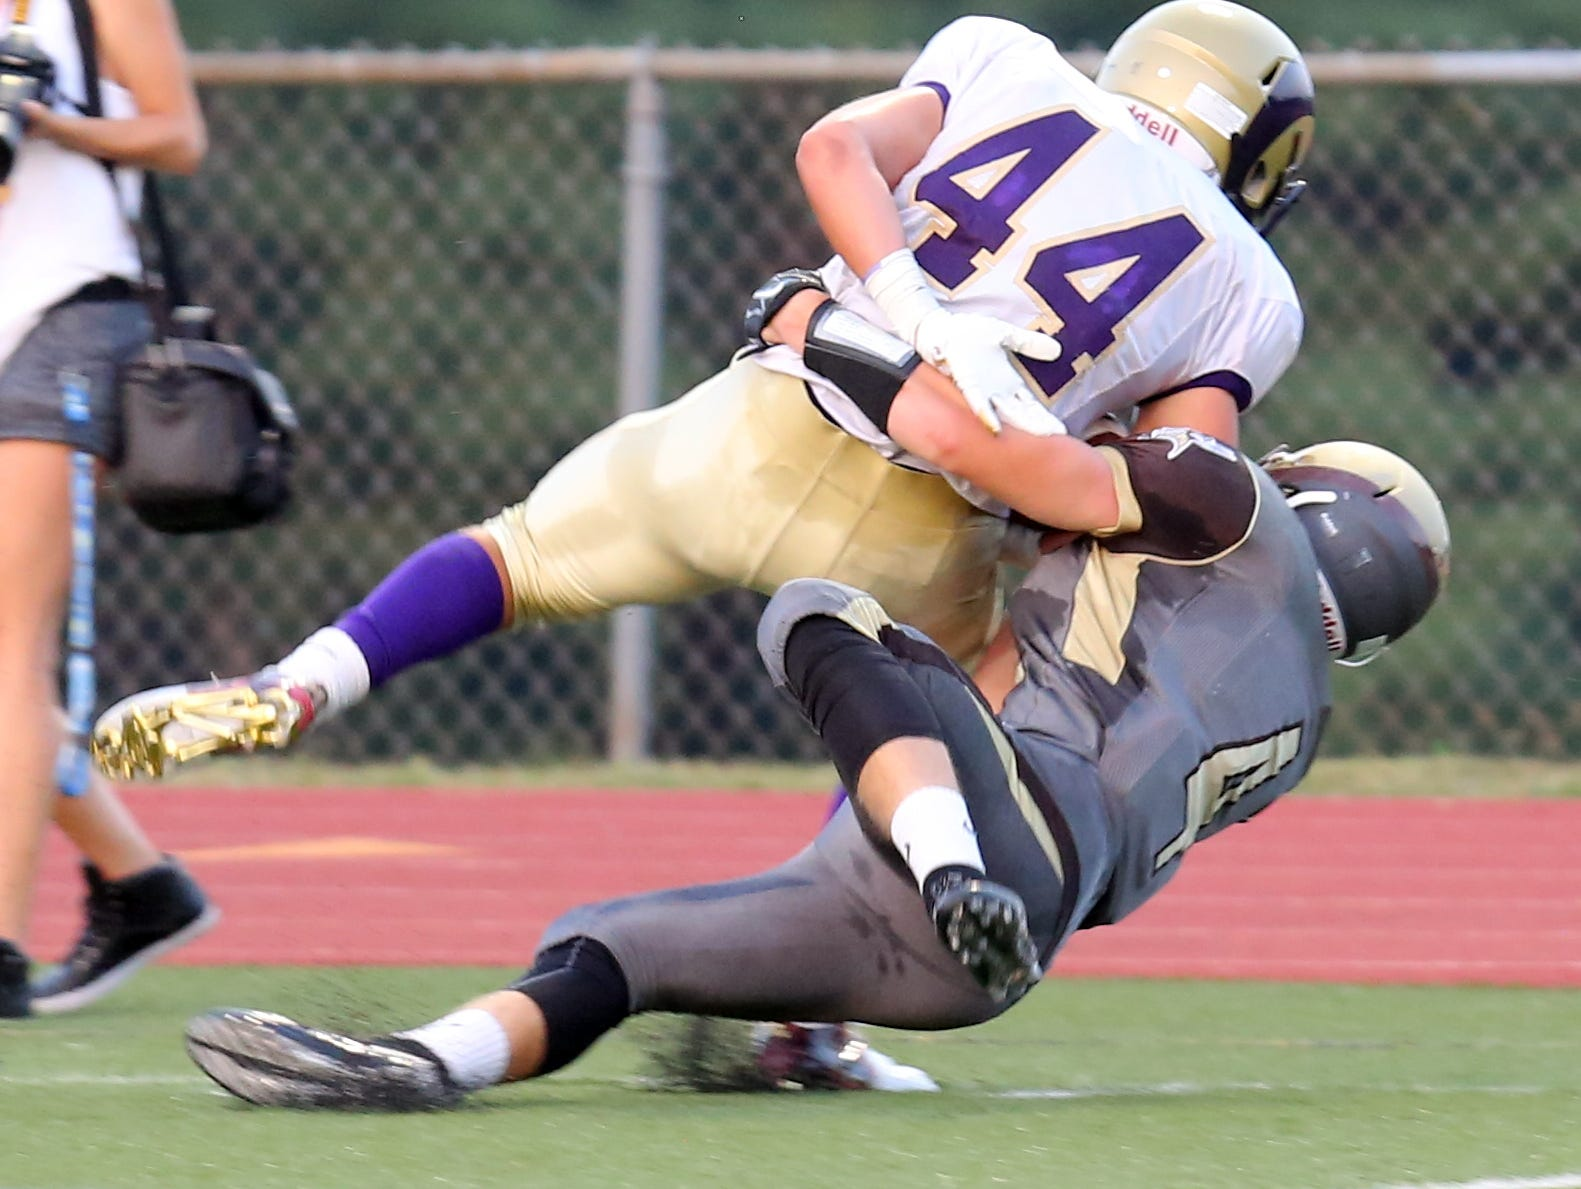 Clarkstown South's Kyle Samuels (4) tackles Clarkstown North's Michael Porco (44) during game action at Clarkstown South High School in West Nyack Sept. 4, 2015.